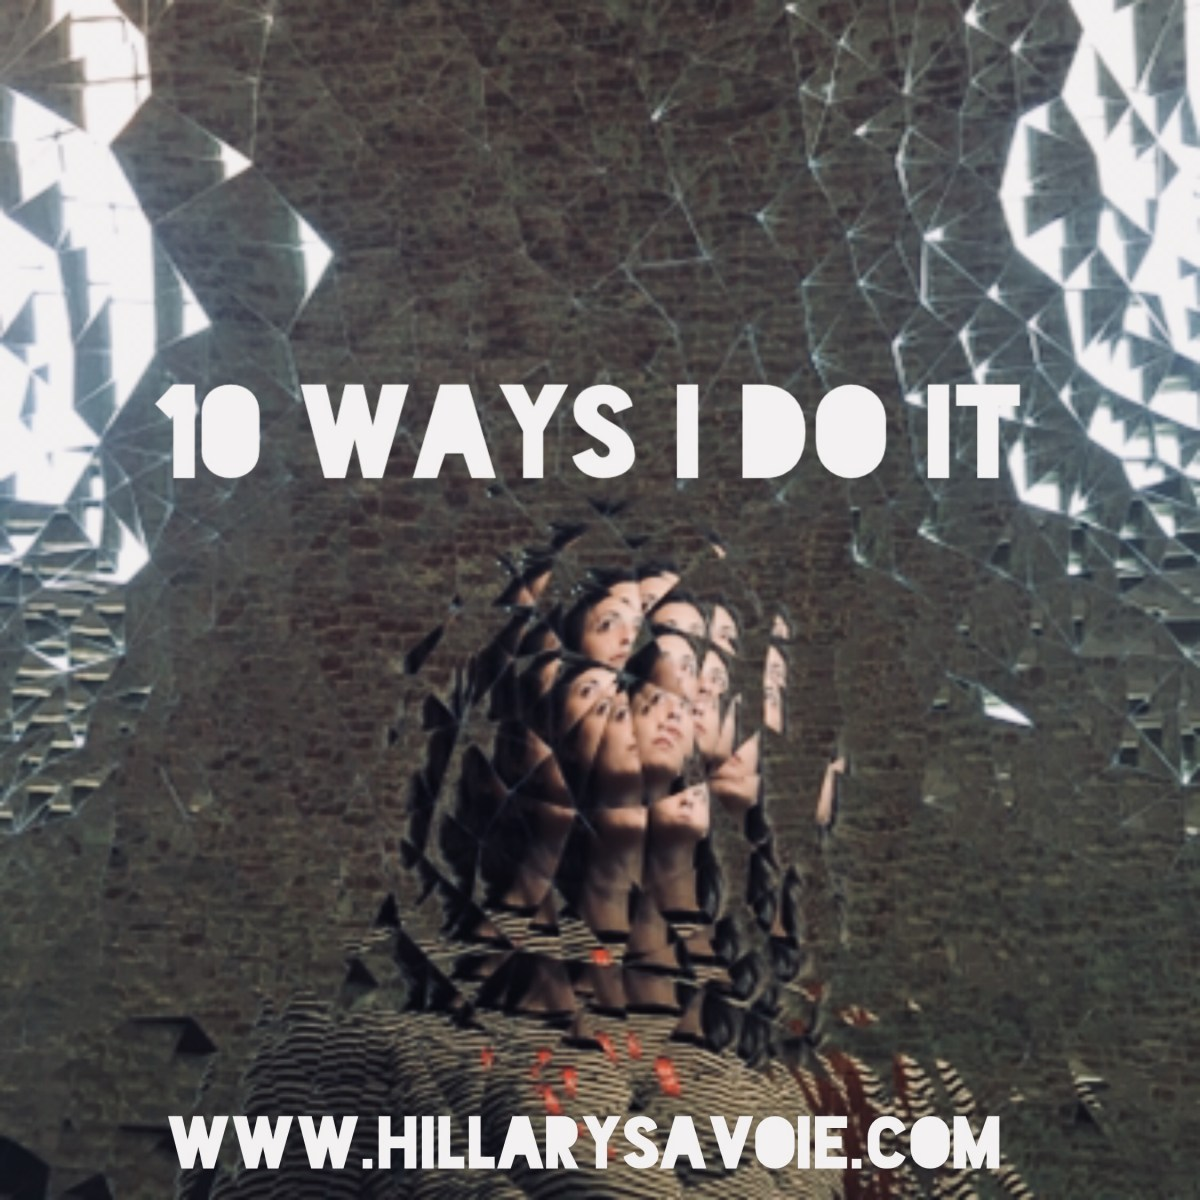 10 Ways I Do It